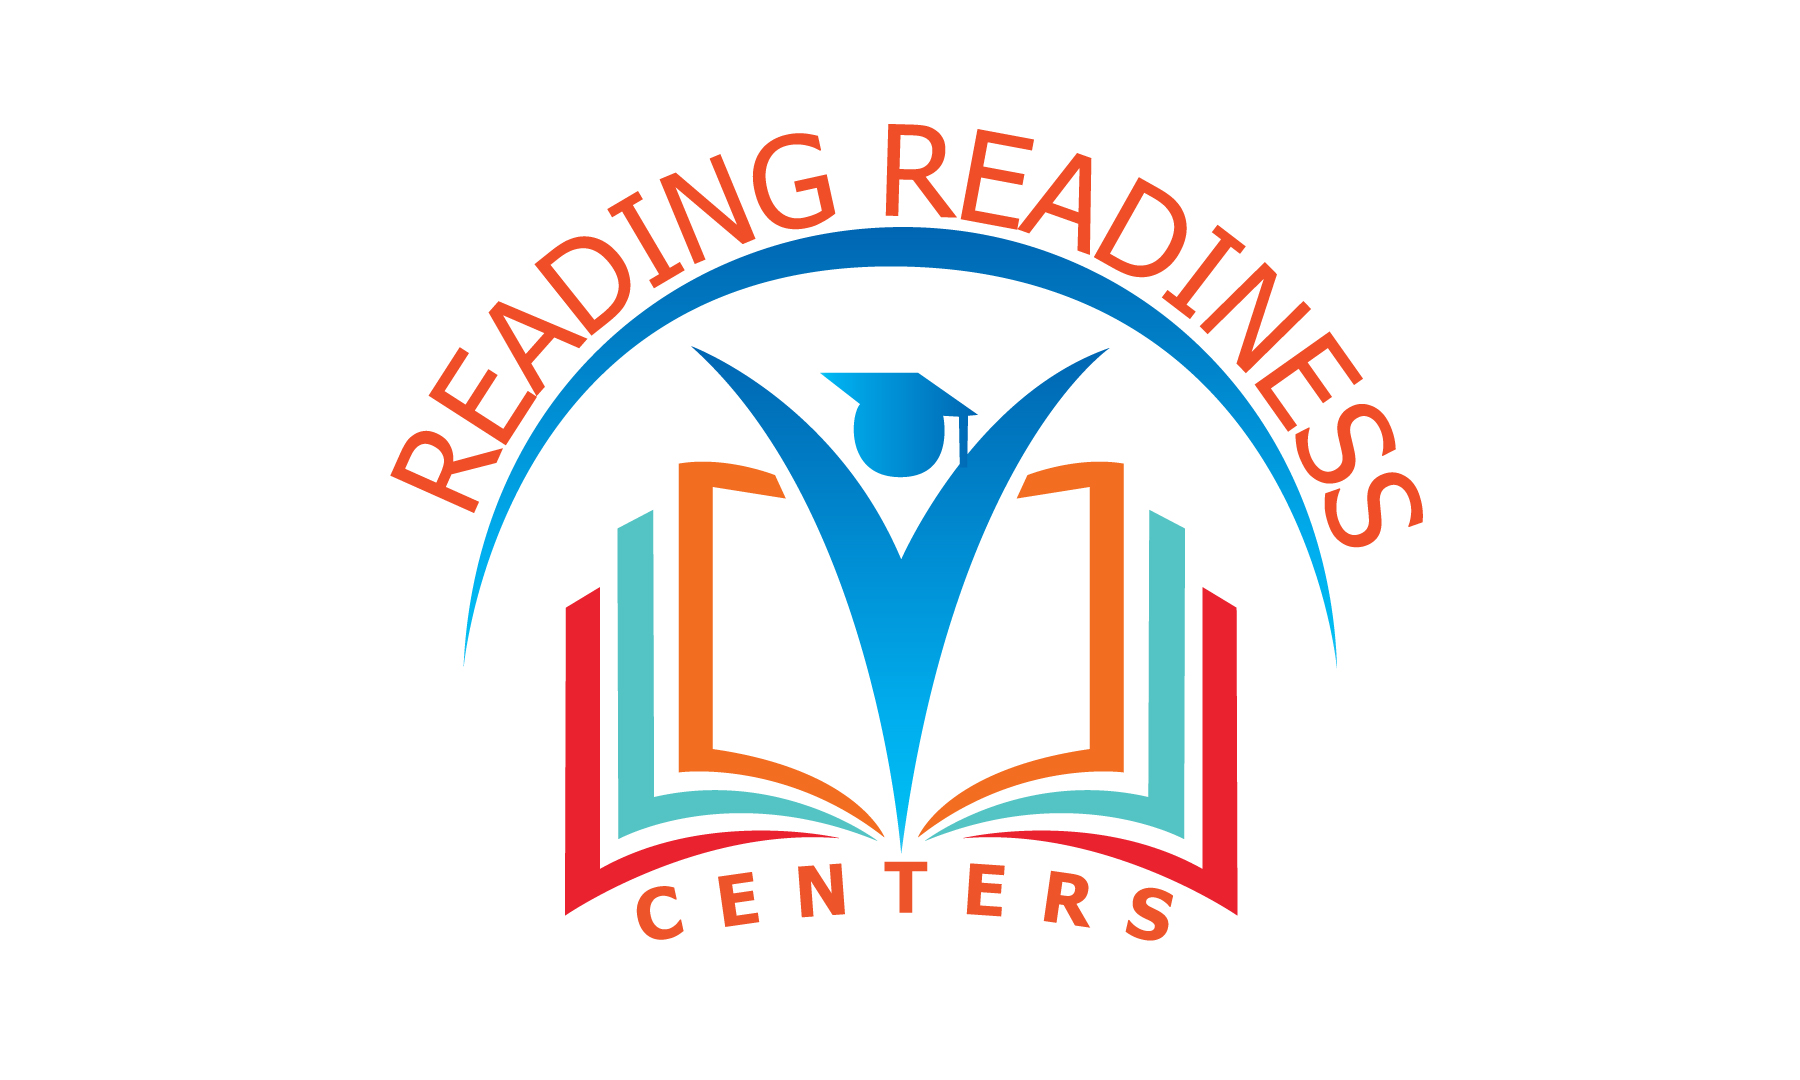 Reading Readiness Centers Announces Franchise Program for People Passionate About Educating Kids While Building a Profitable Business